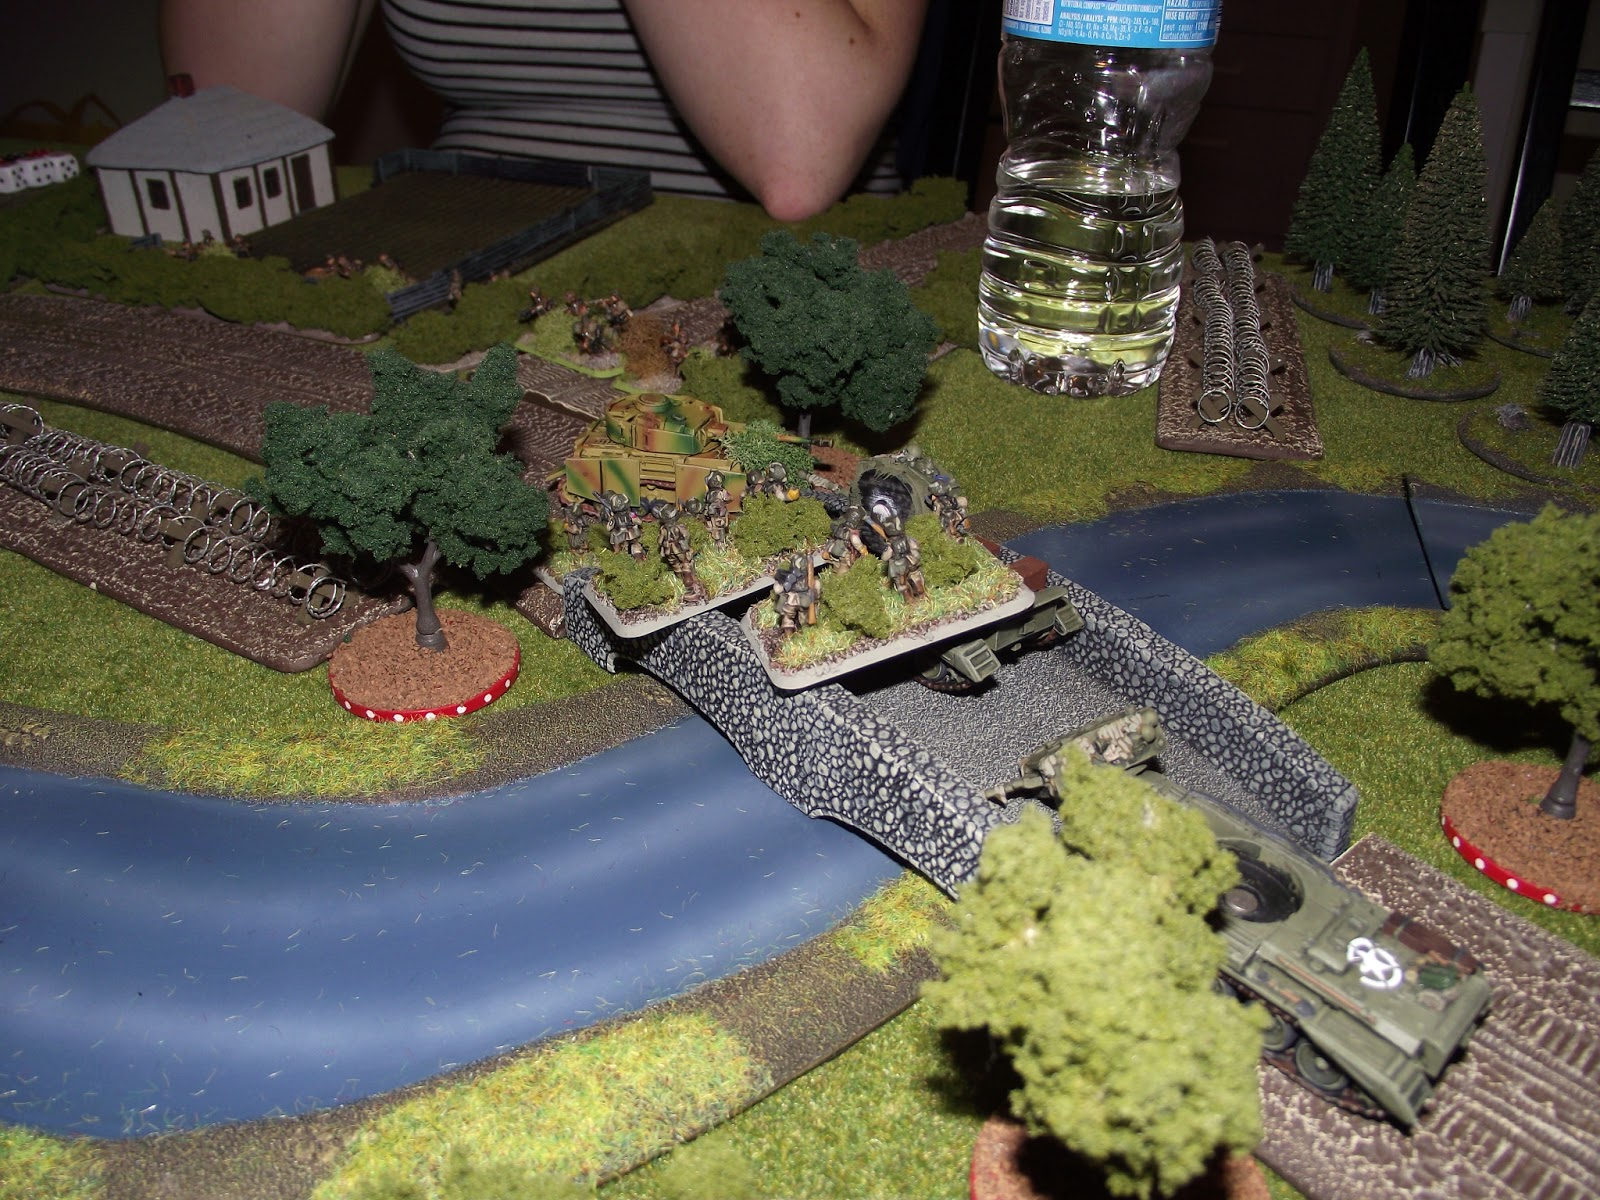 The other group of Paras makes a run for the flank of the lone remaining Panzer IV.